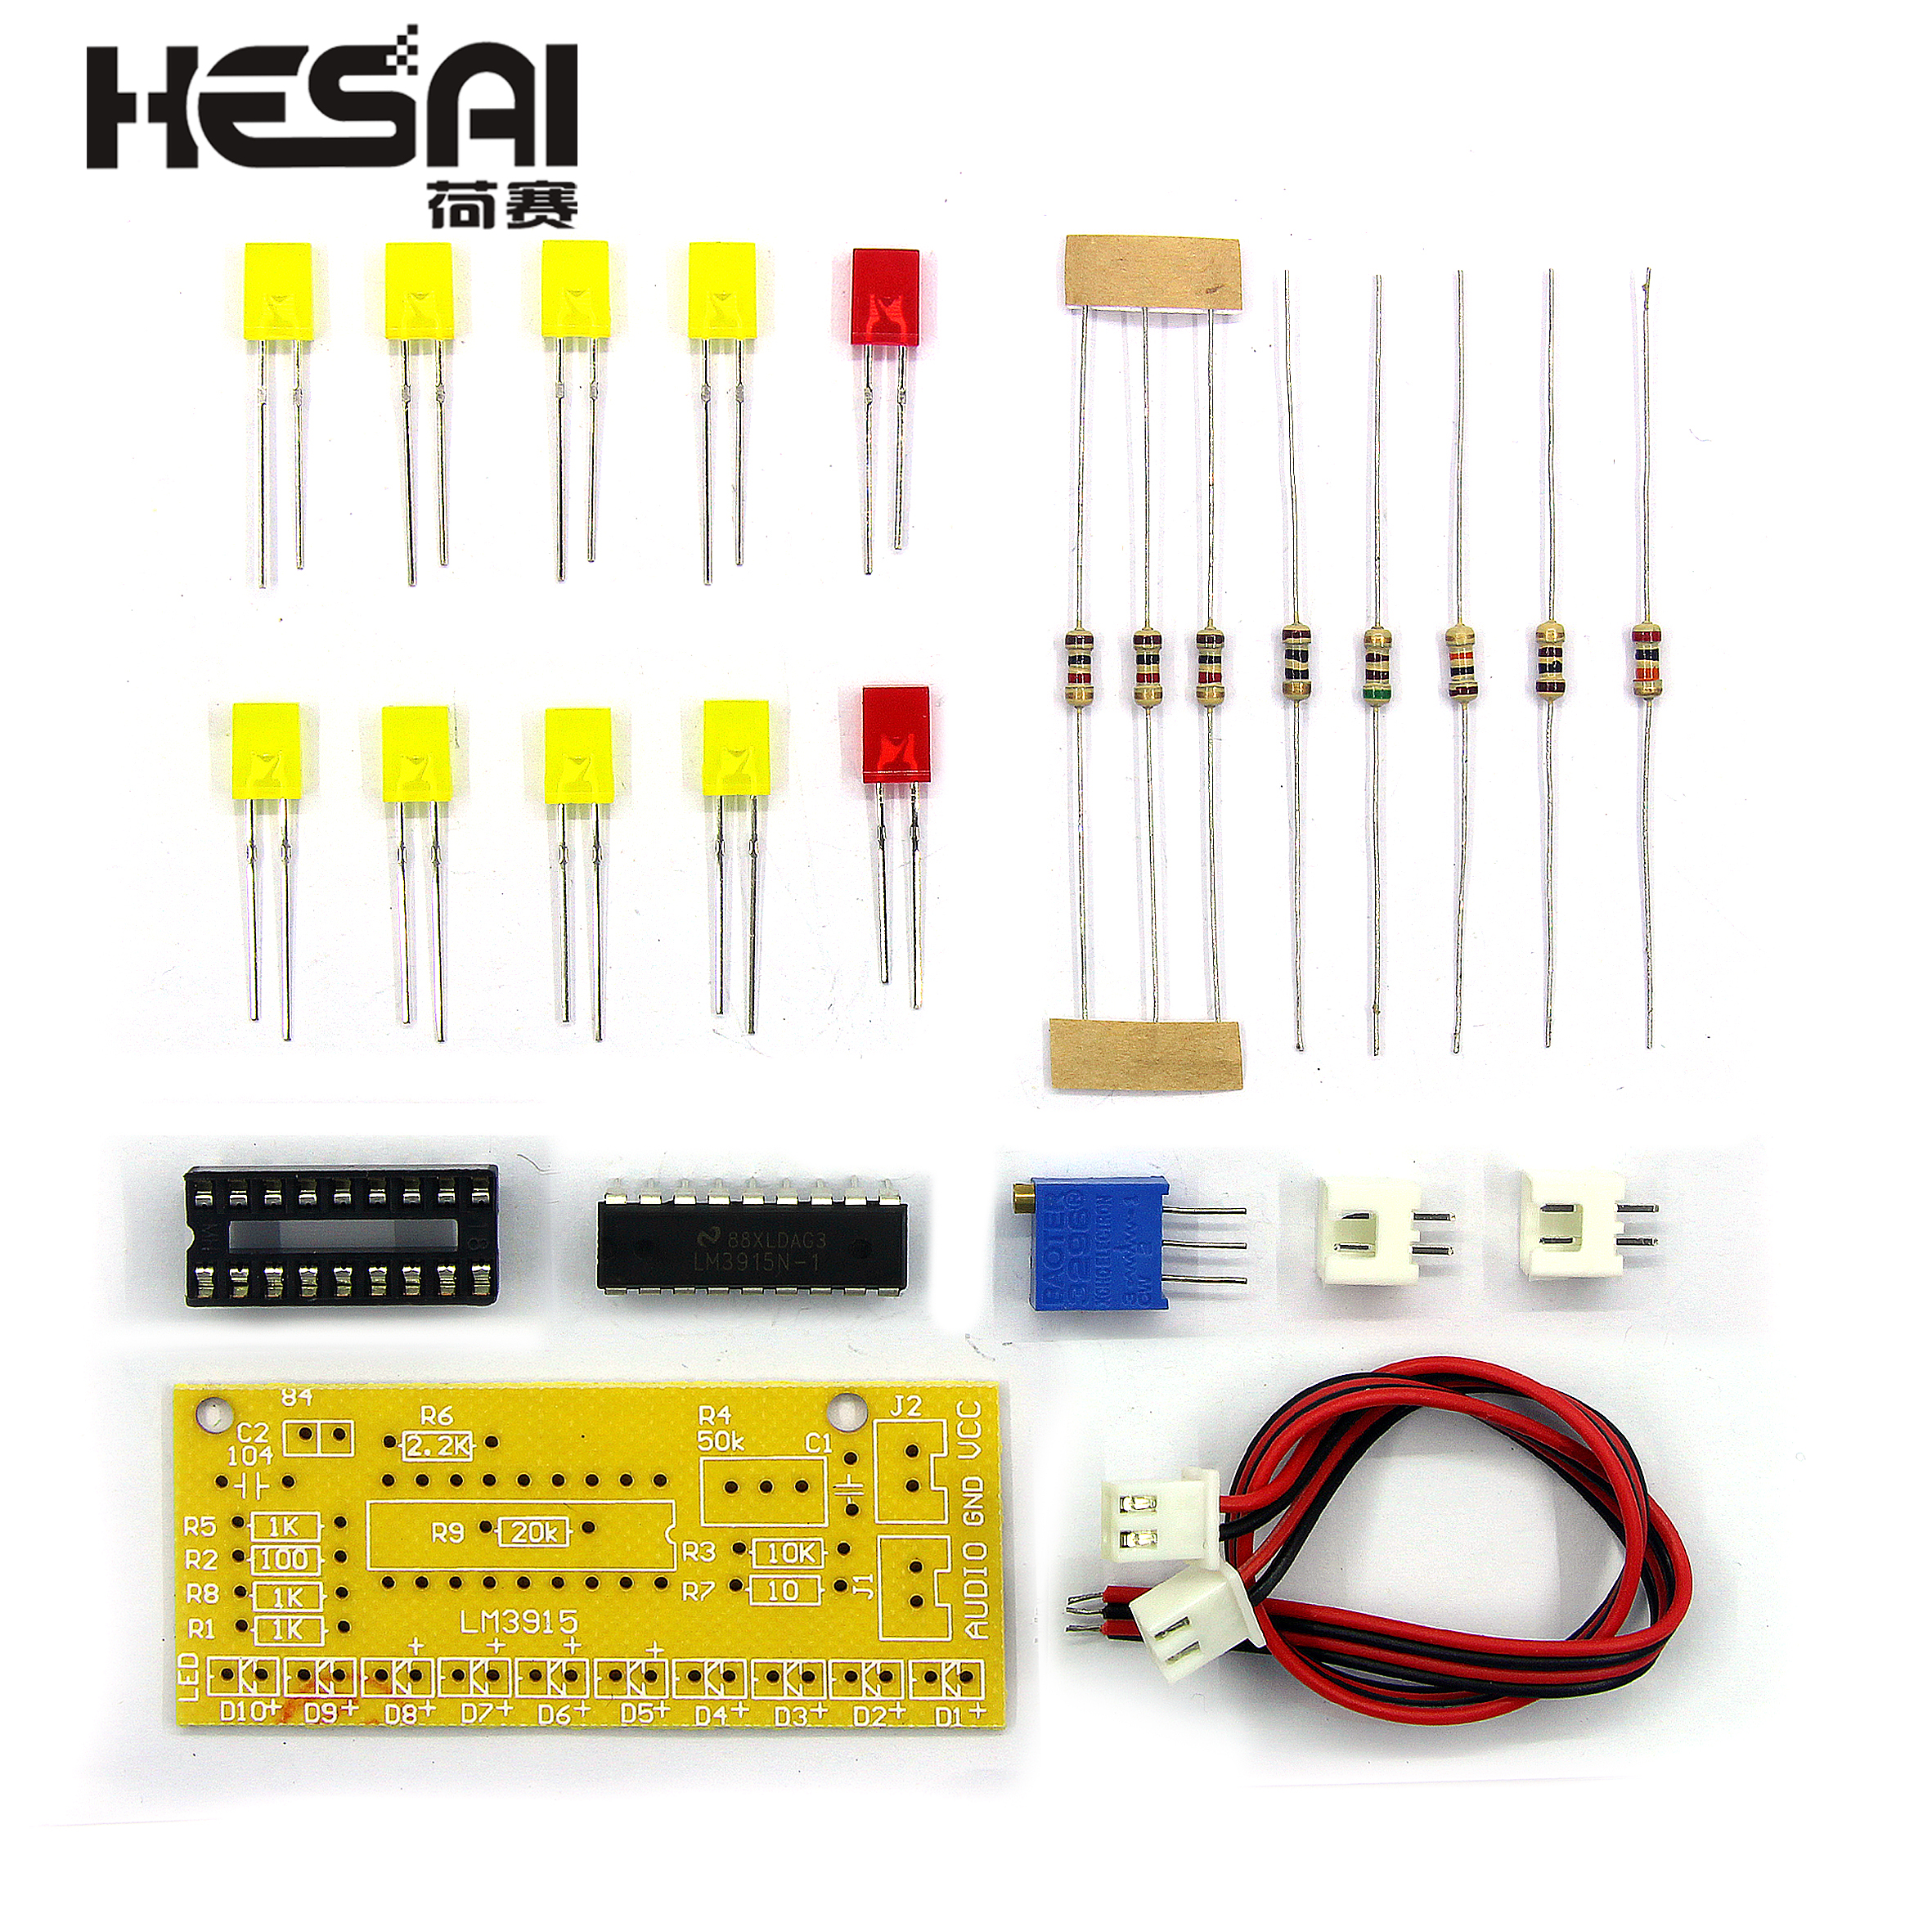 LM3915 10 LED Sound Audio Spectrum Analyzer Level Indicator Kit DIY Electoronics Soldering Practice Set